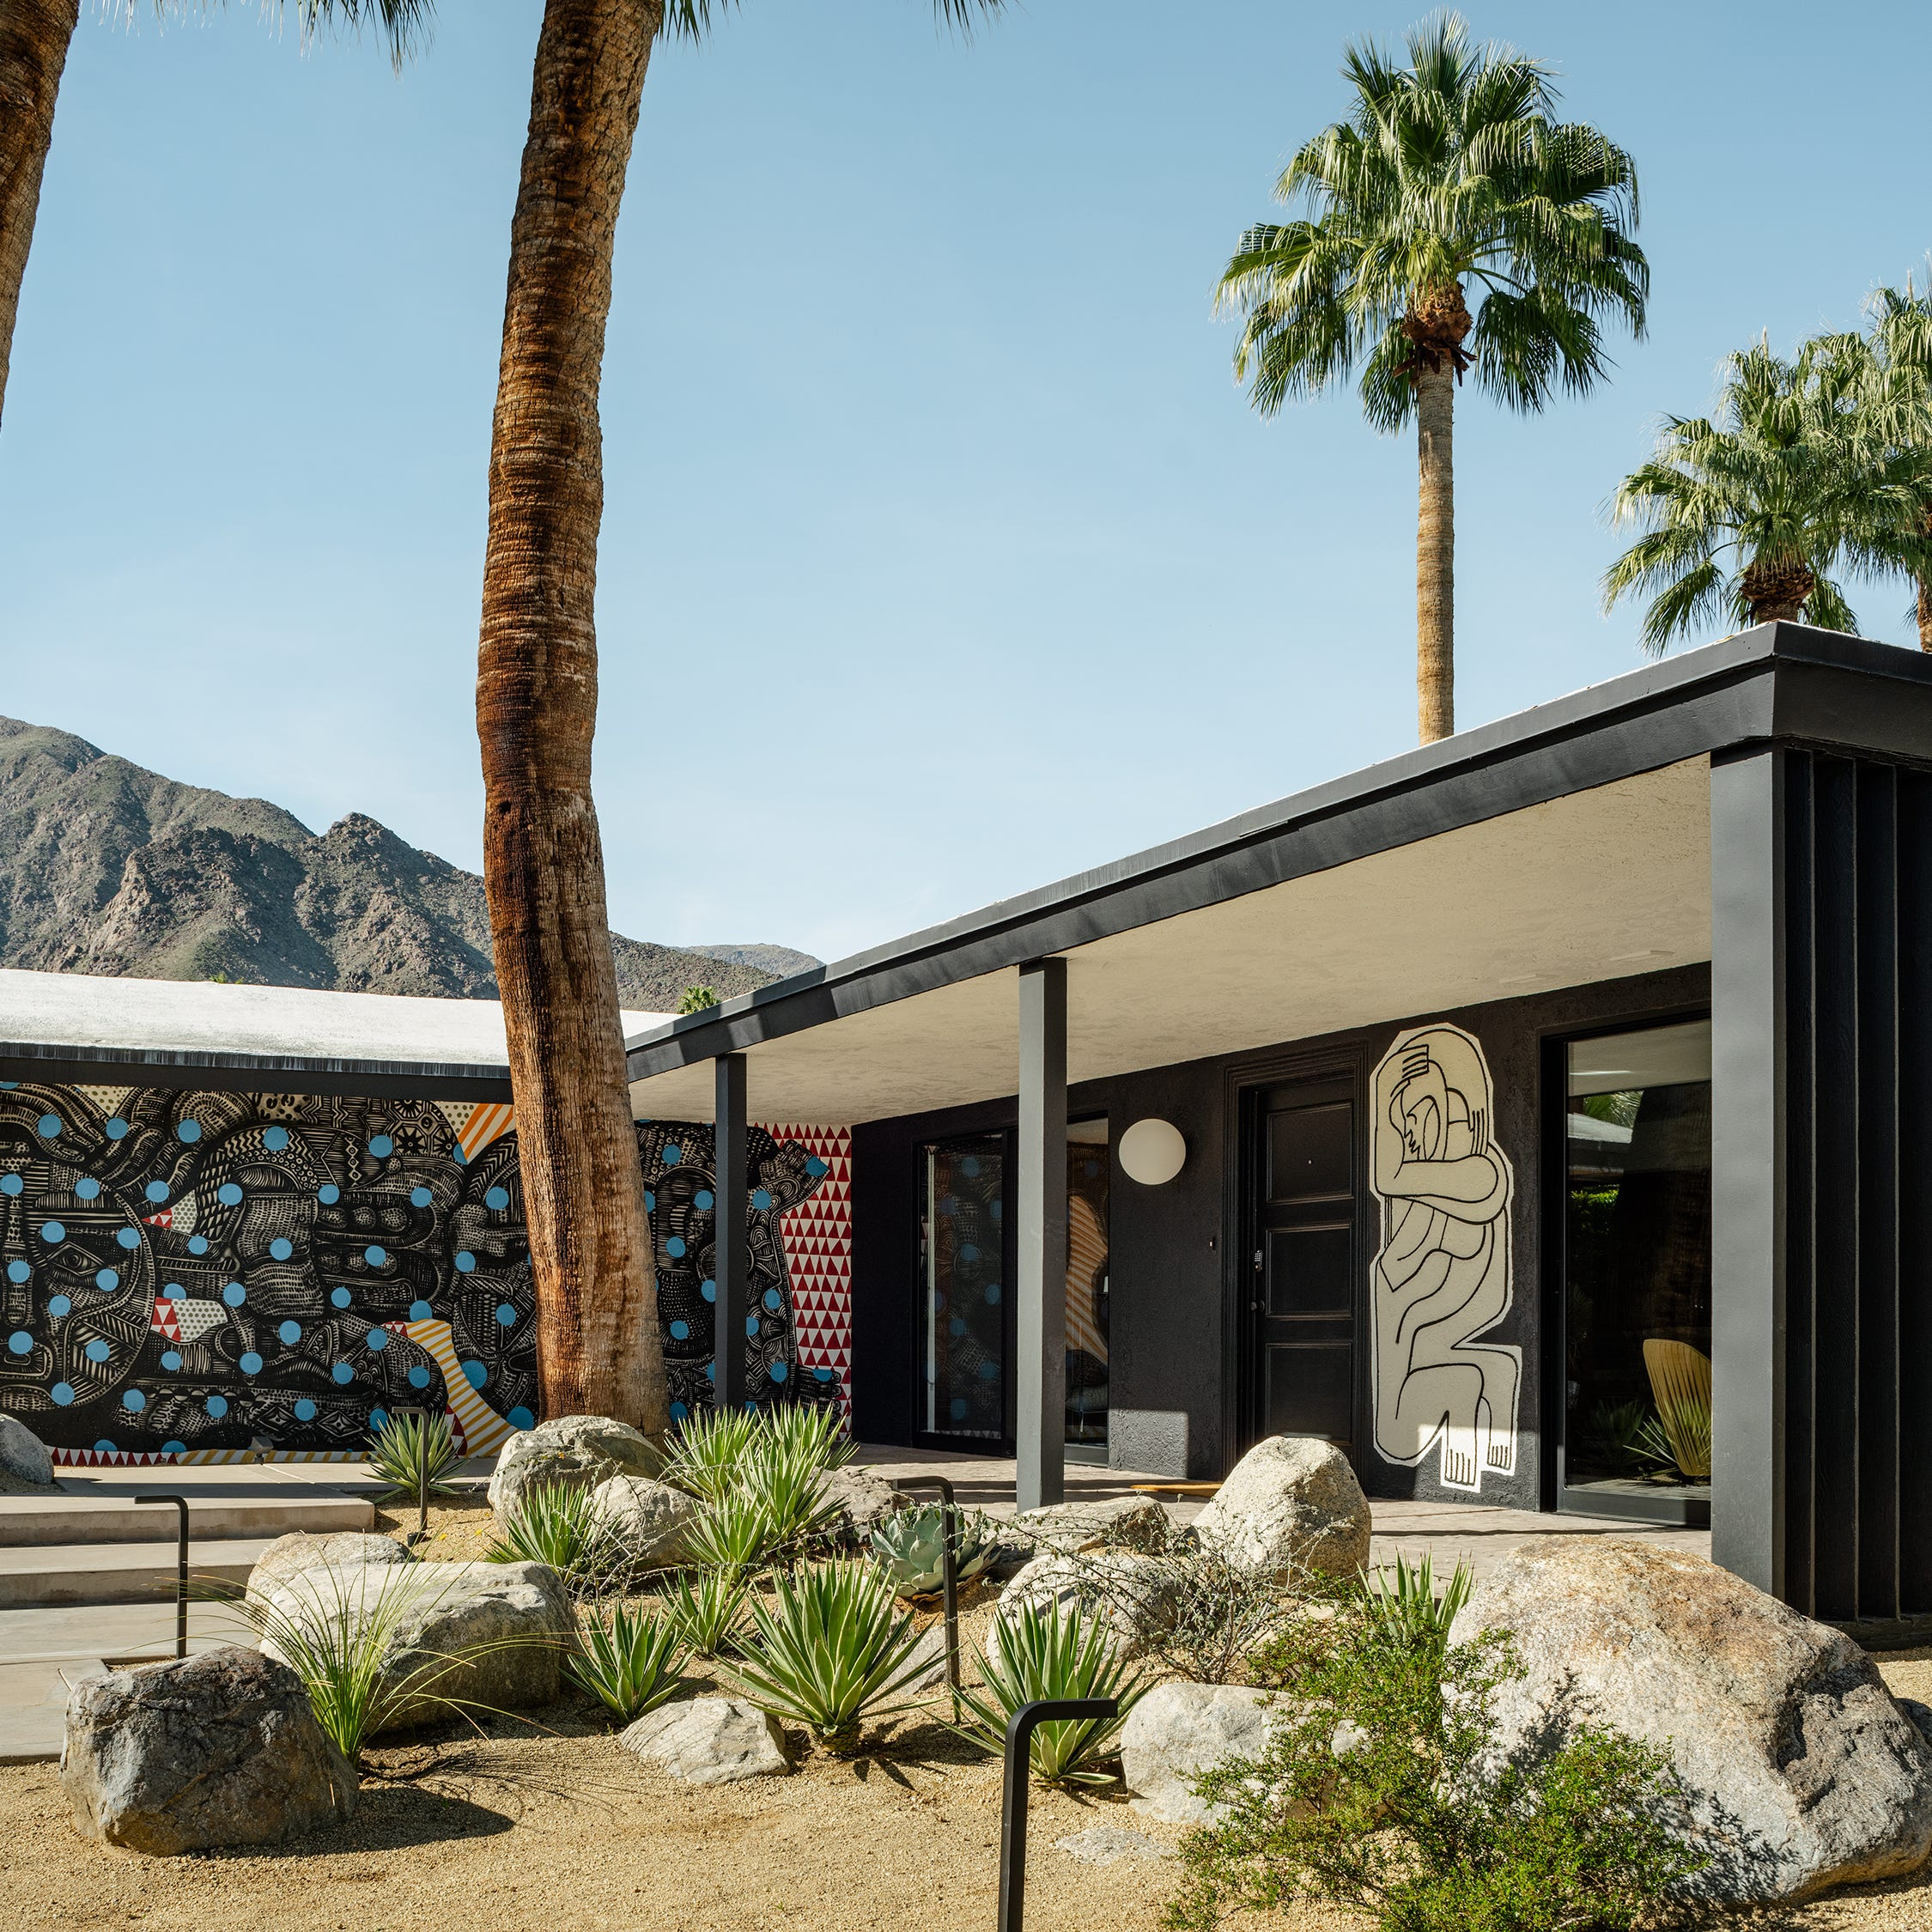 Desert homes and businesses embrace outdoor murals as an extension of personal style